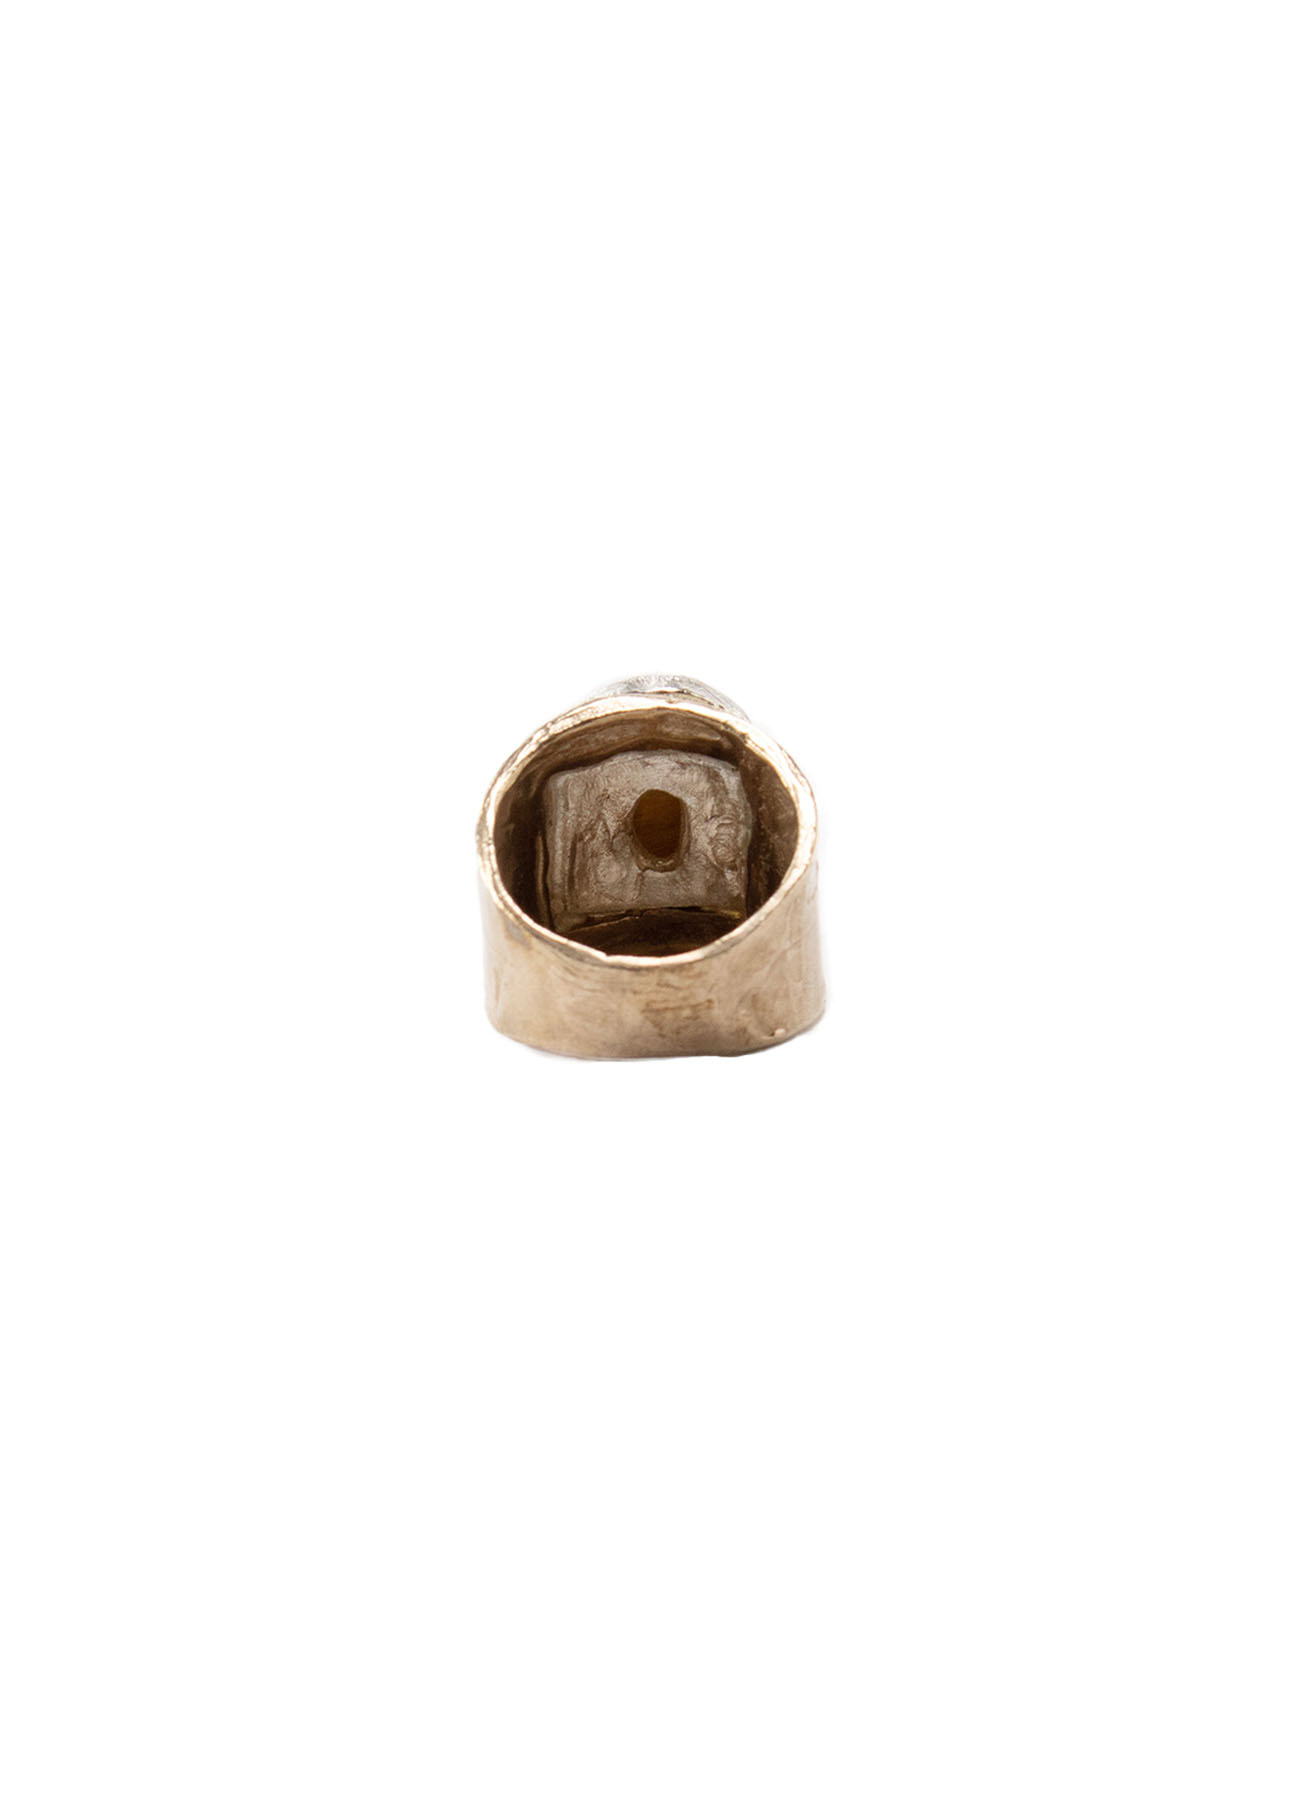 FMS BRONZE Y's PINK S.V.B RING A